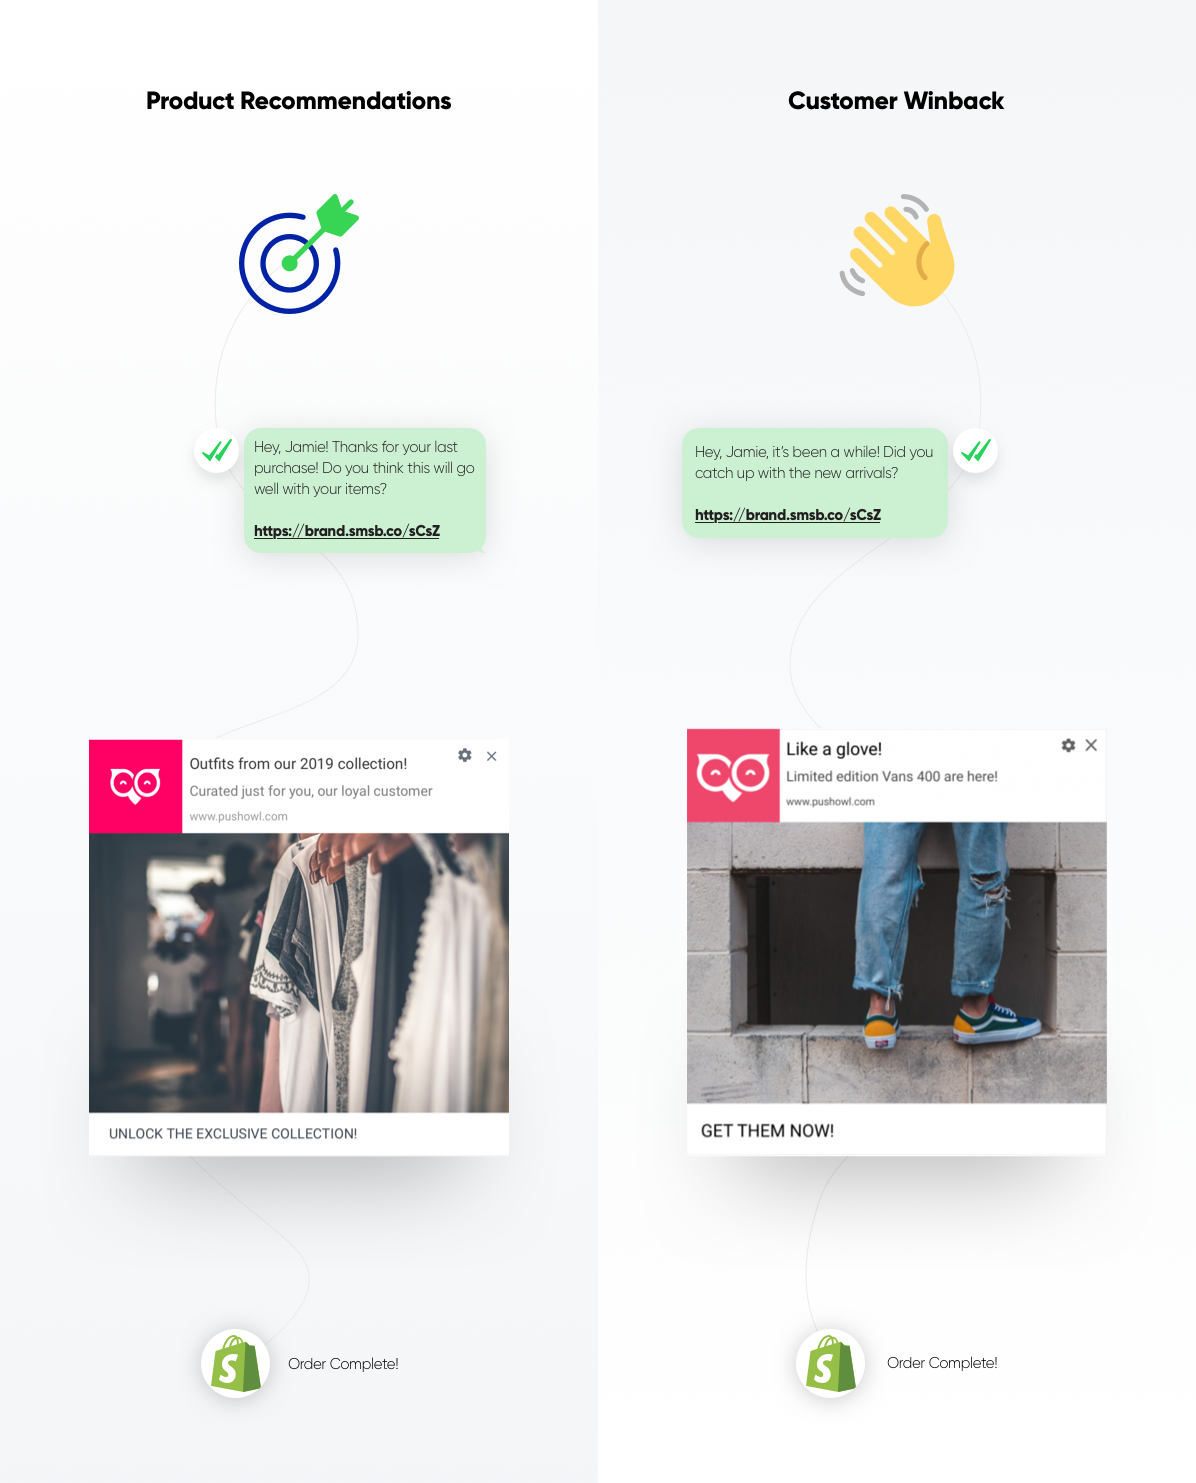 PushOwl and SMSBump Partnership: Personalized product recommendations and customer win-back automation with SMS and push notifications